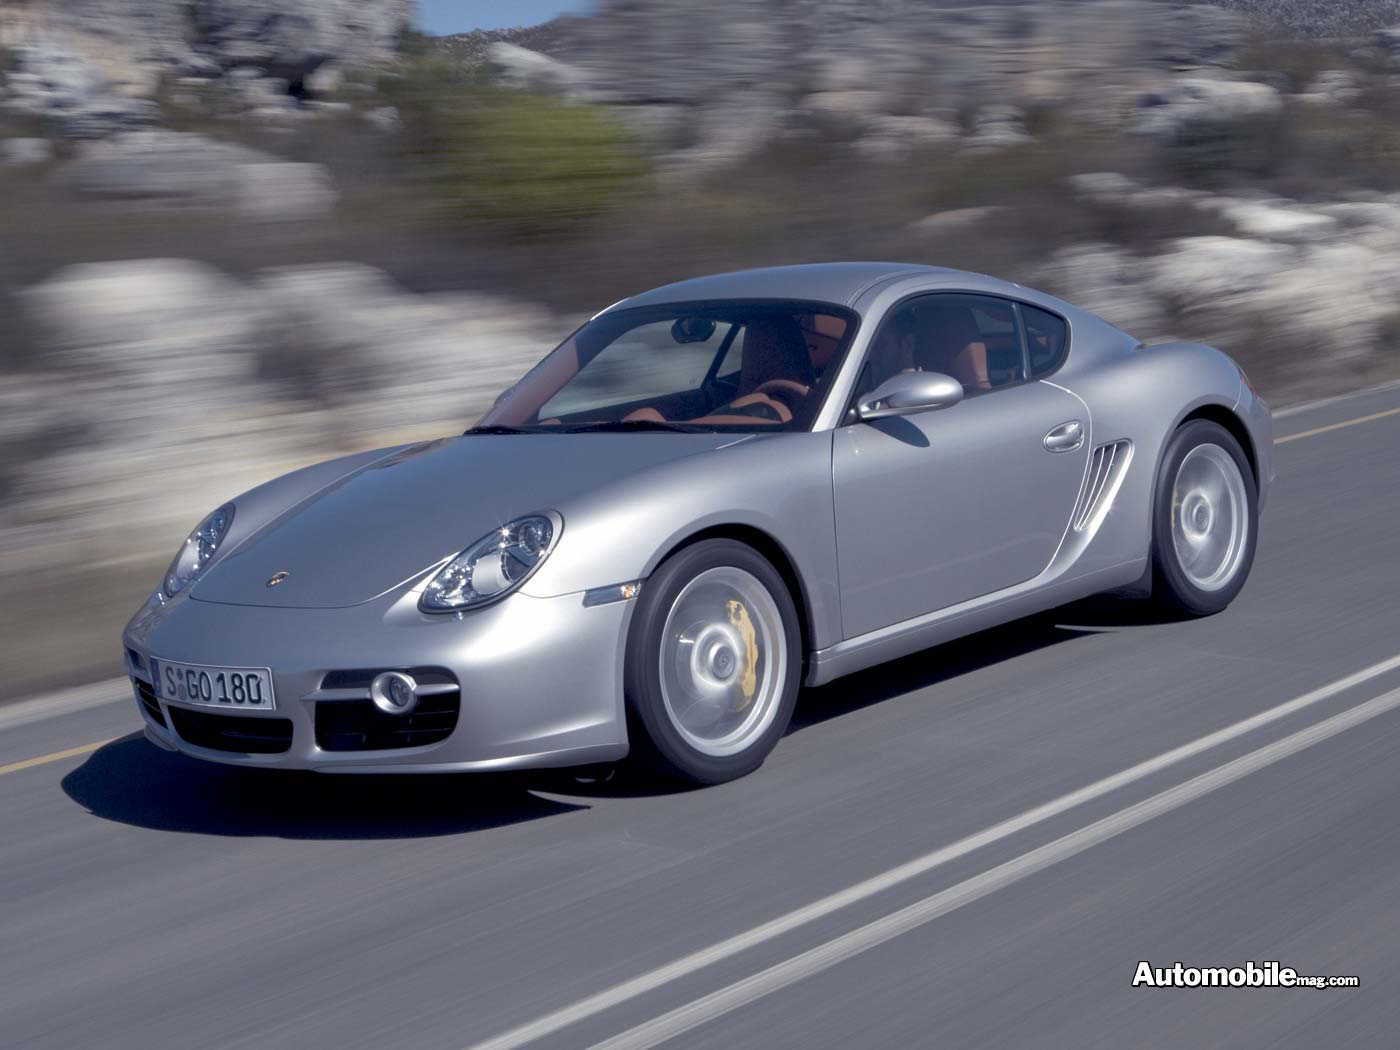 unveiled 2006 porsche cayman s photo gallery and specifications news automobile magazine. Black Bedroom Furniture Sets. Home Design Ideas